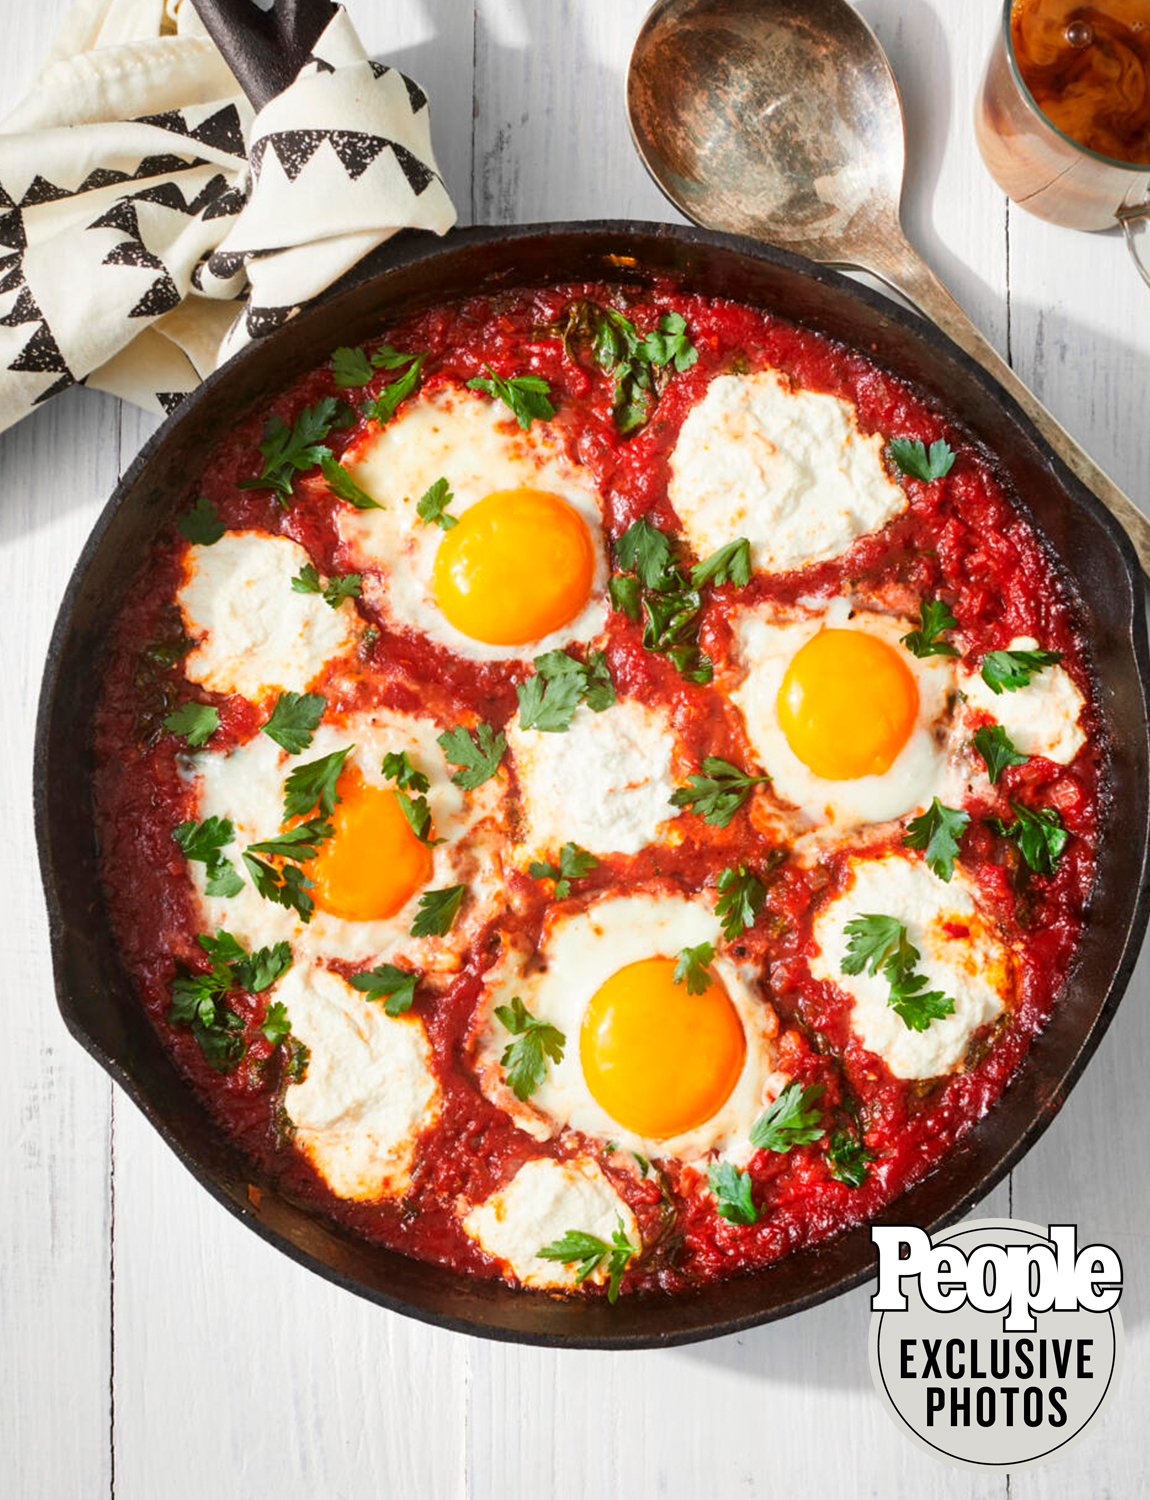 Baked Eggs in Tomato Sauce with Ricotta & Spinach